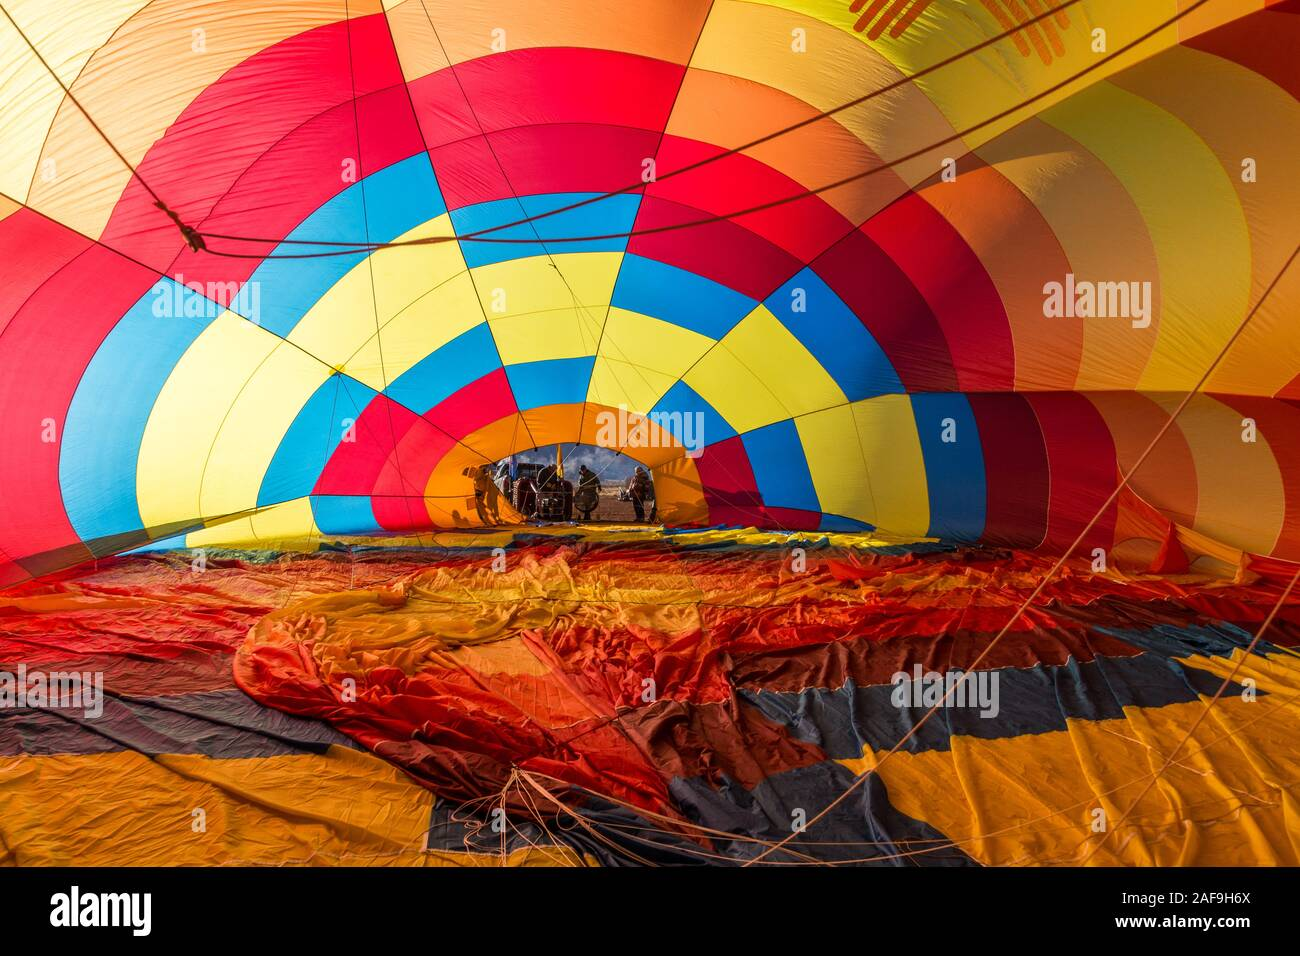 Inside a hot air balloon filling with hot air in preparation for launching in the Monument Valley Balloon Festival in the Monument Valley Navajo Triba Stock Photo